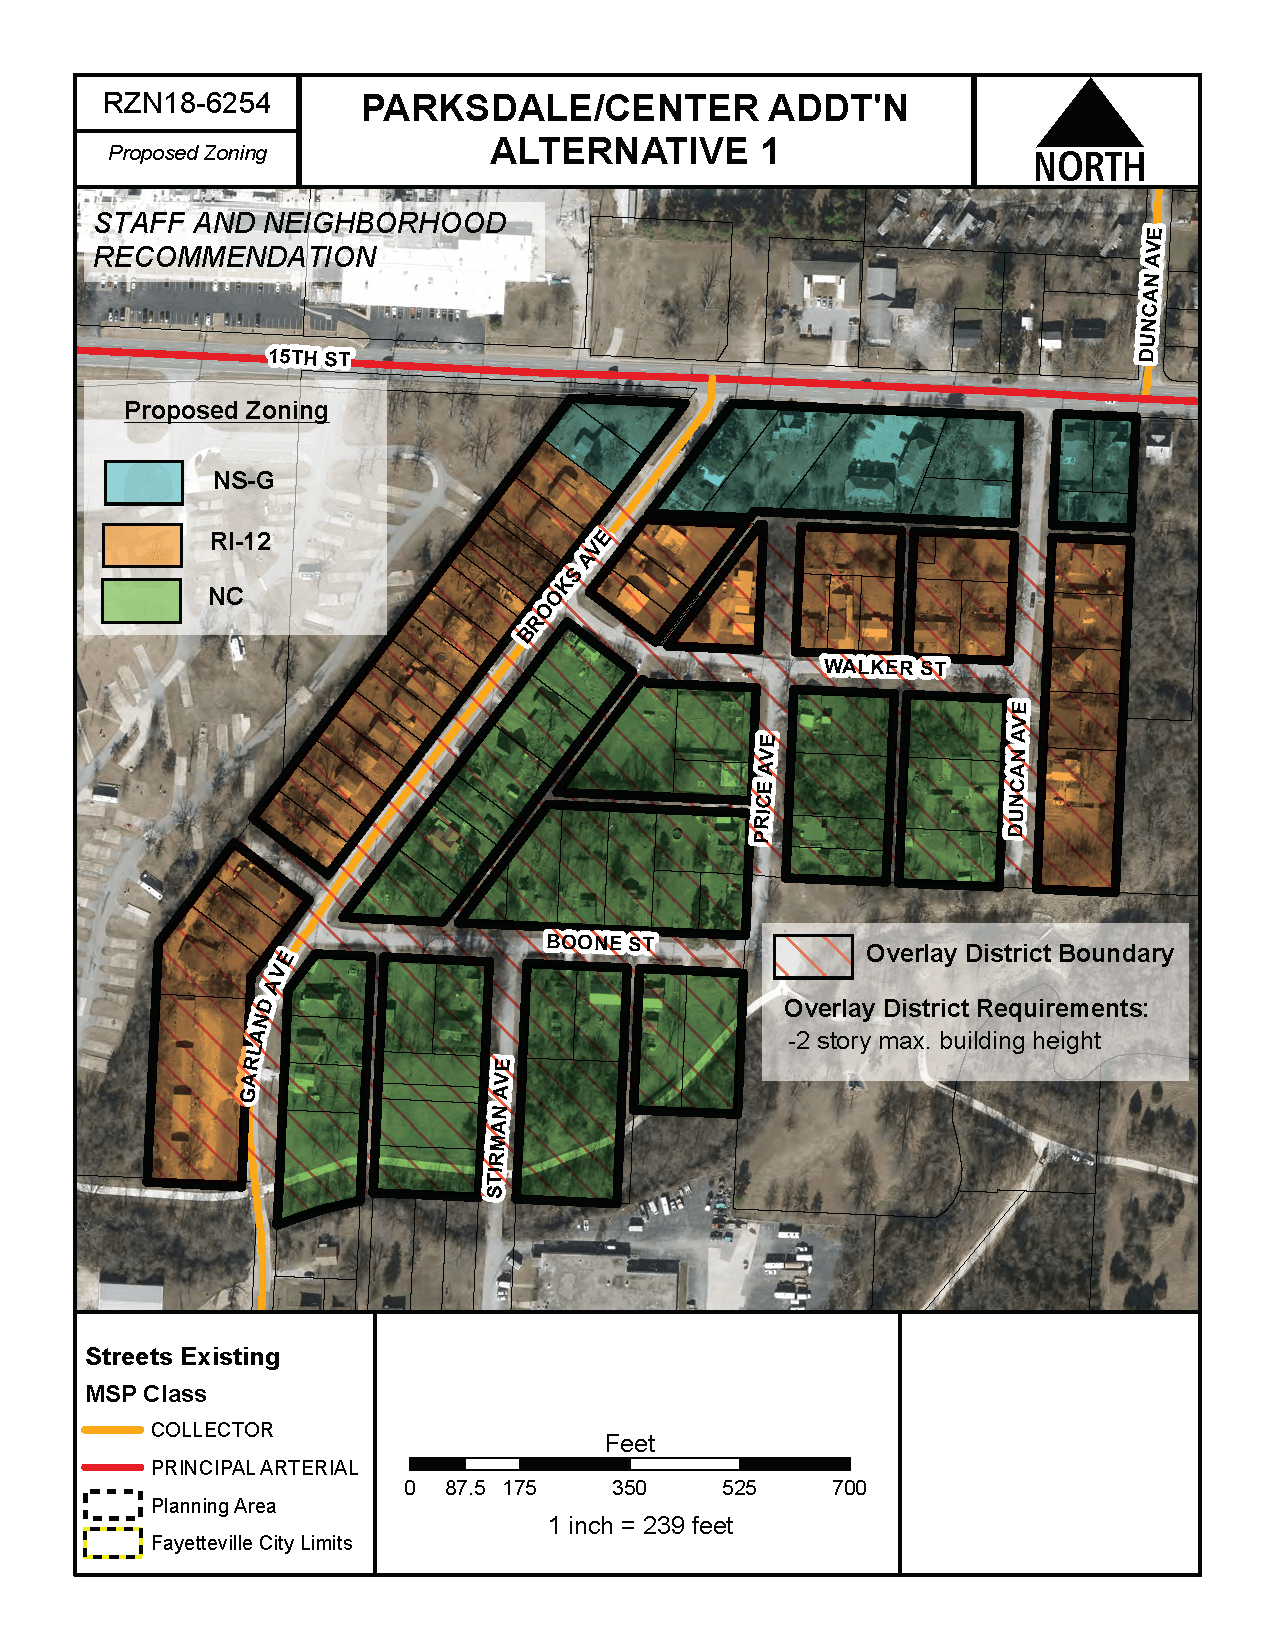 RZN18-6254 Proposed Alternative1 (Neighborhood and Staff Rec)